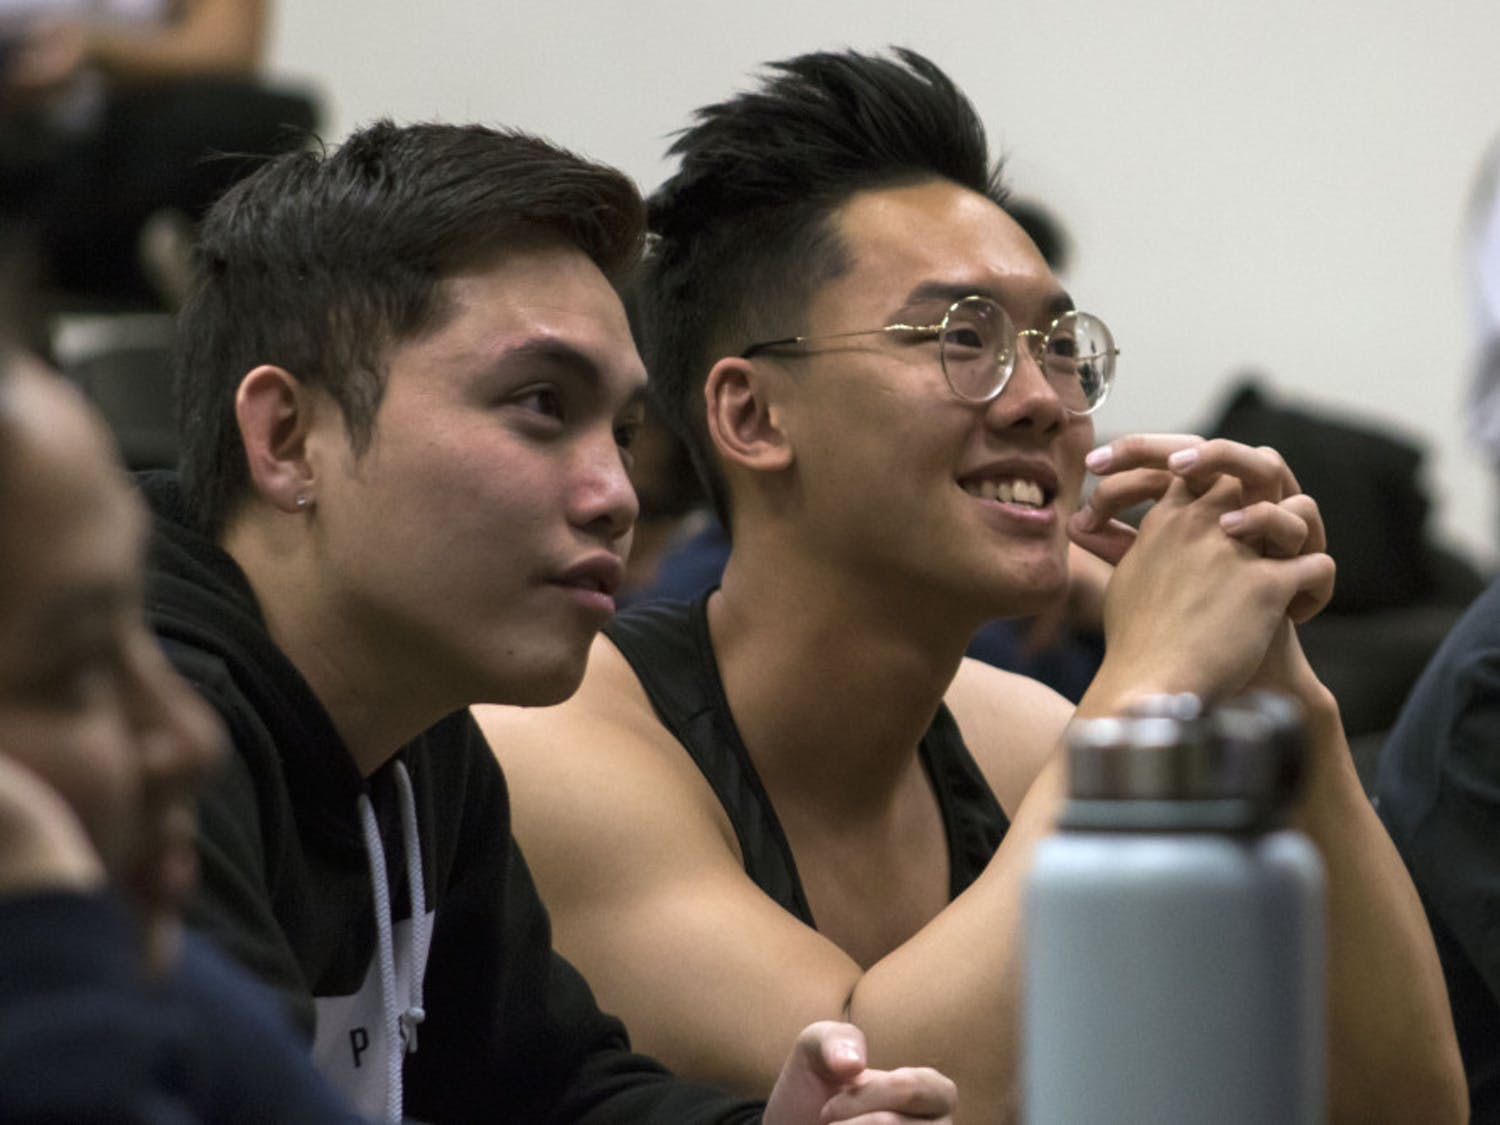 Tuan Nguyen, a 21-year-old biology junior, and Daniel Nguyen, a 22-year-old economics junior, attend a meeting in Little Hall Wednesday evening for the UF Vietnamese Students Organization. Both students said they joined the club their freshman year to form a better connection with their culture and meet new people.